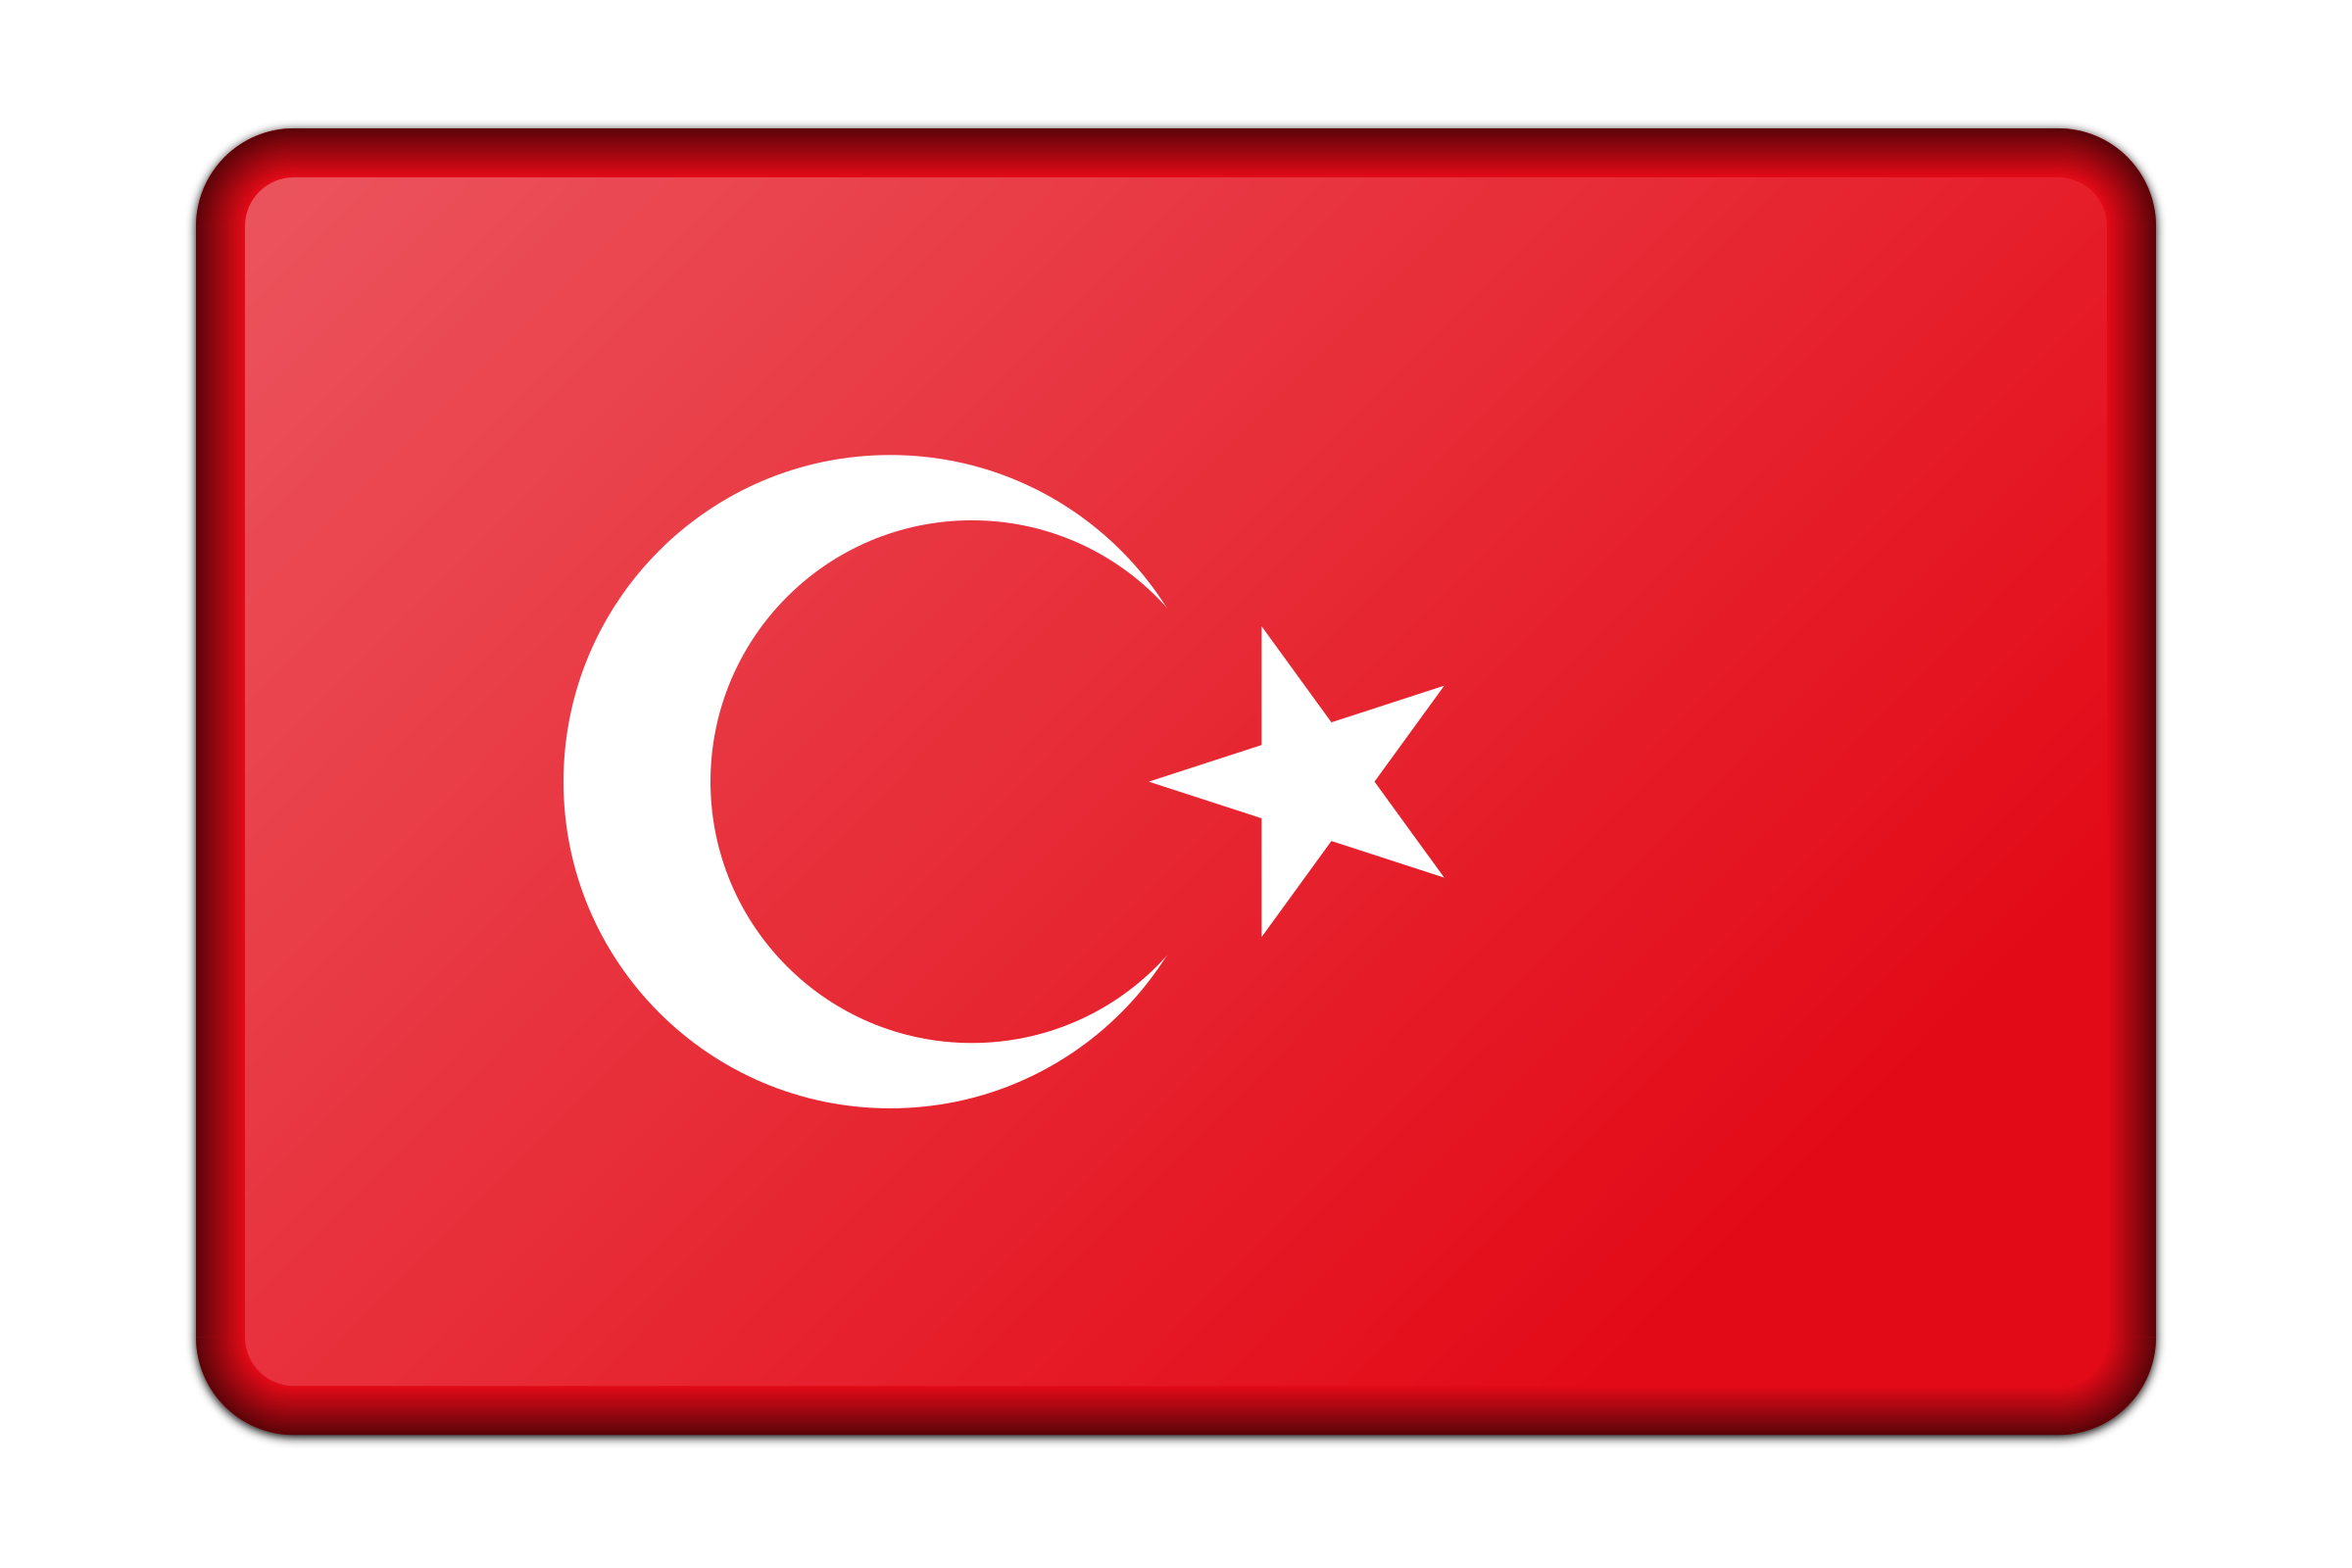 Turkey flag (bevelled) by Firkin